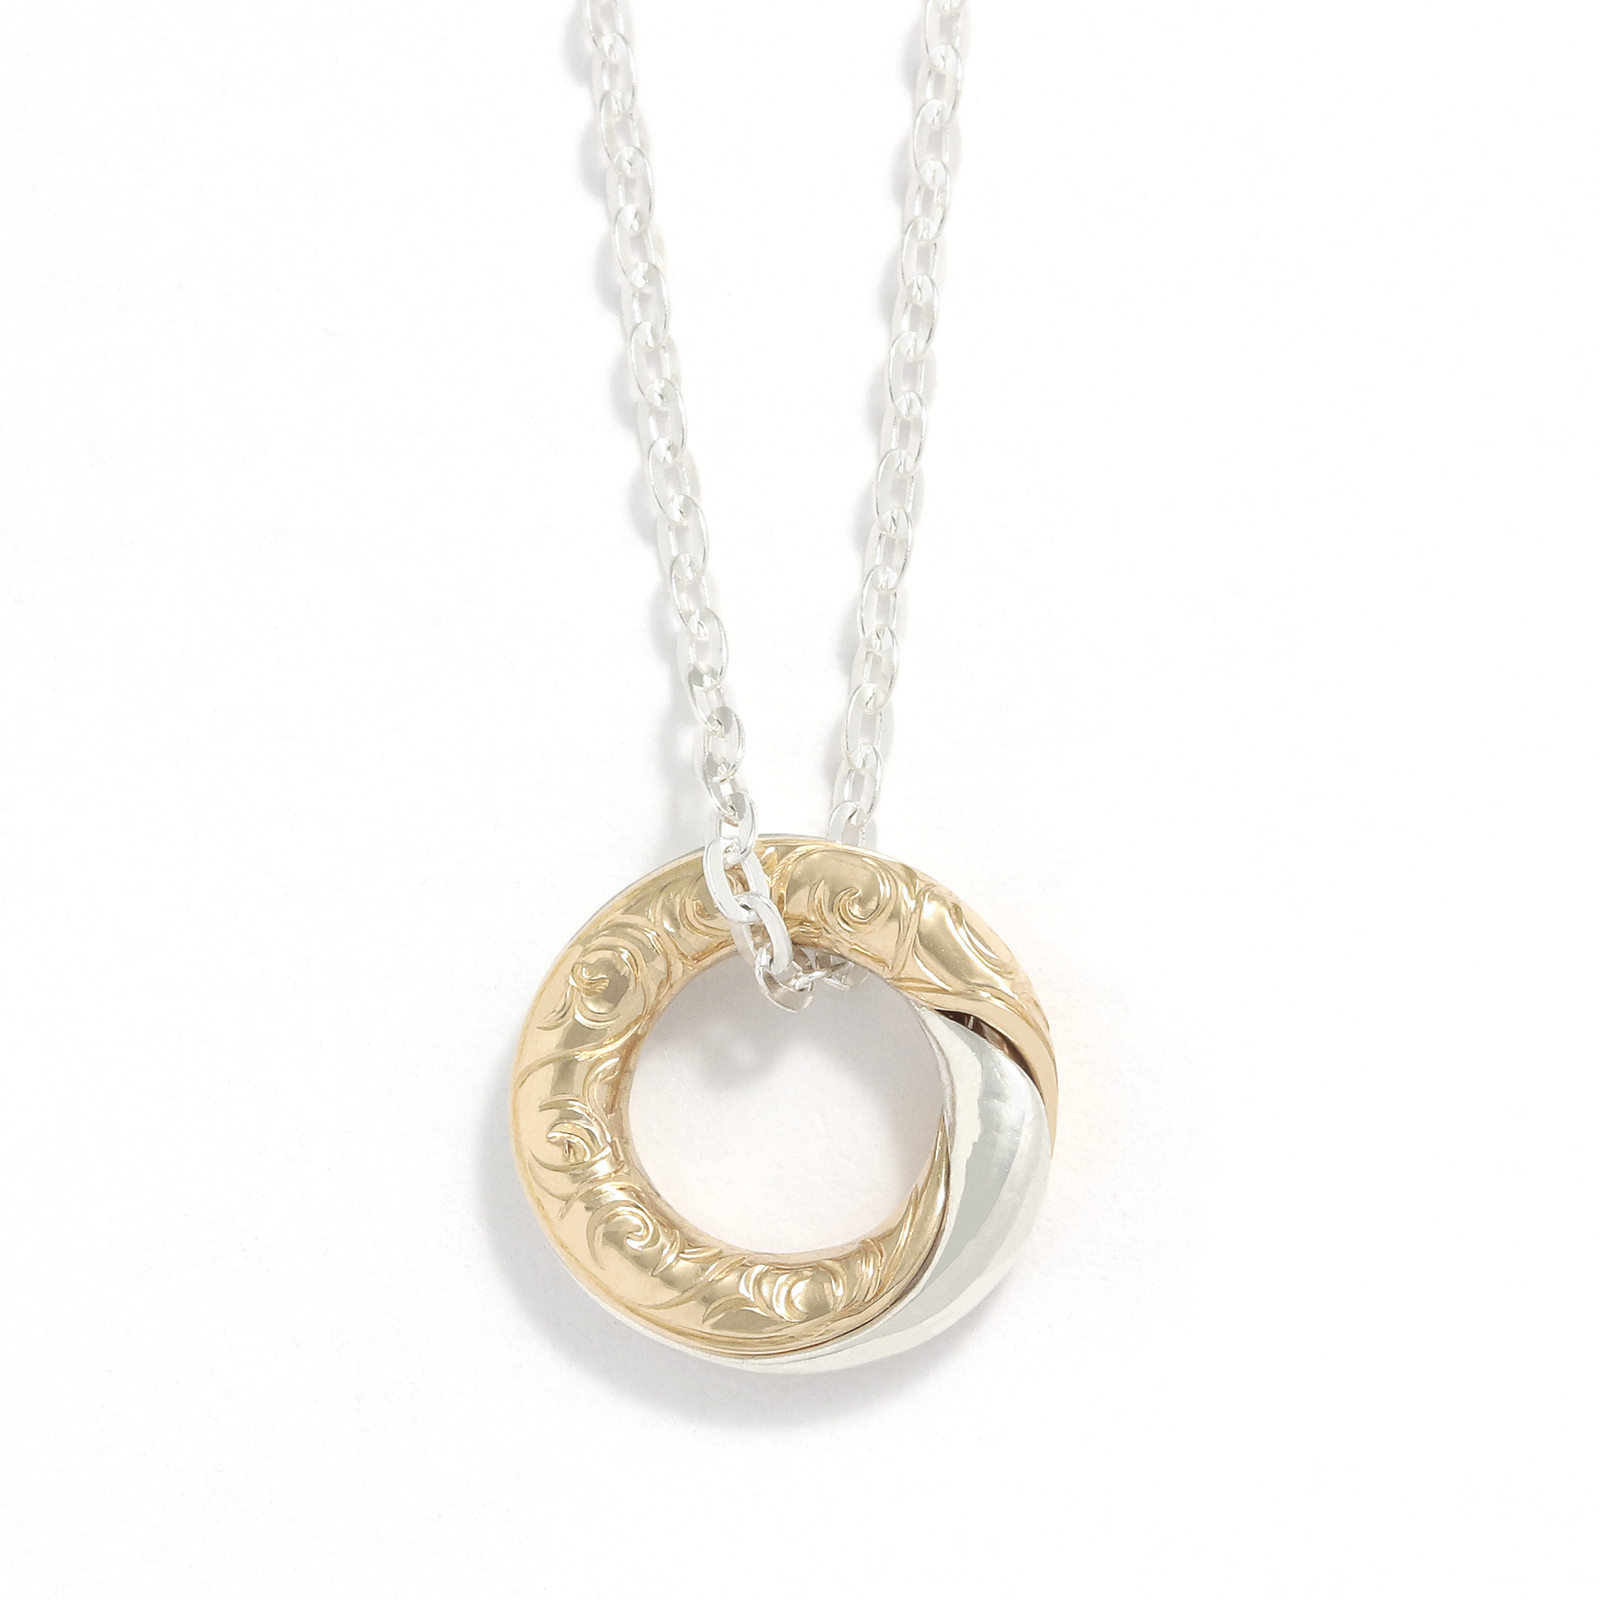 Gimmel Ring Necklace - Silver×10K